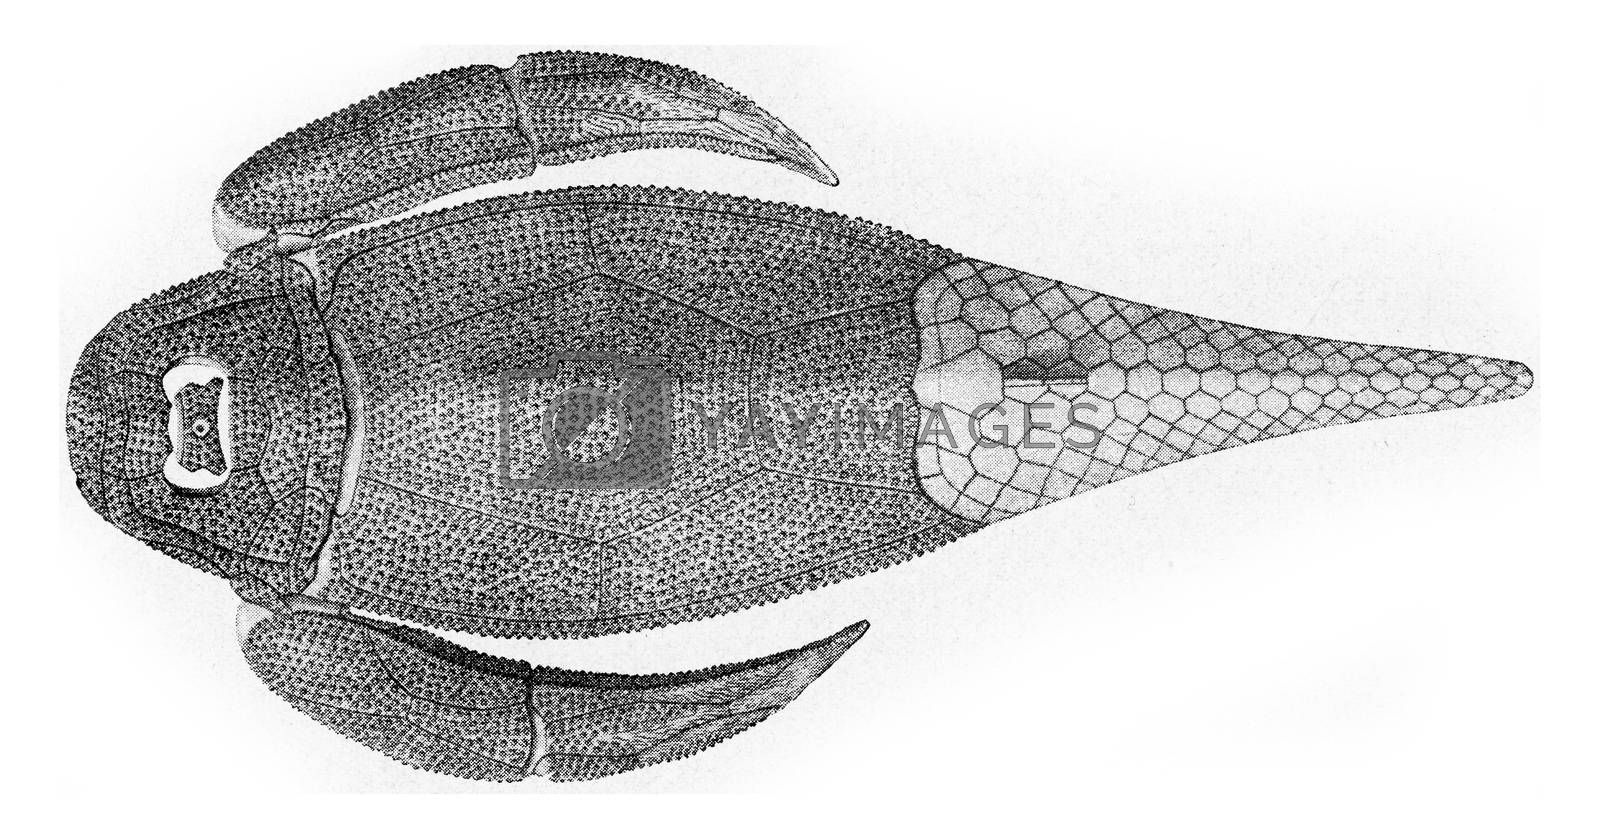 Reconstitution of a fish cuirass of the Devonian, vintage engraved illustration. From the Universe and Humanity, 1910.